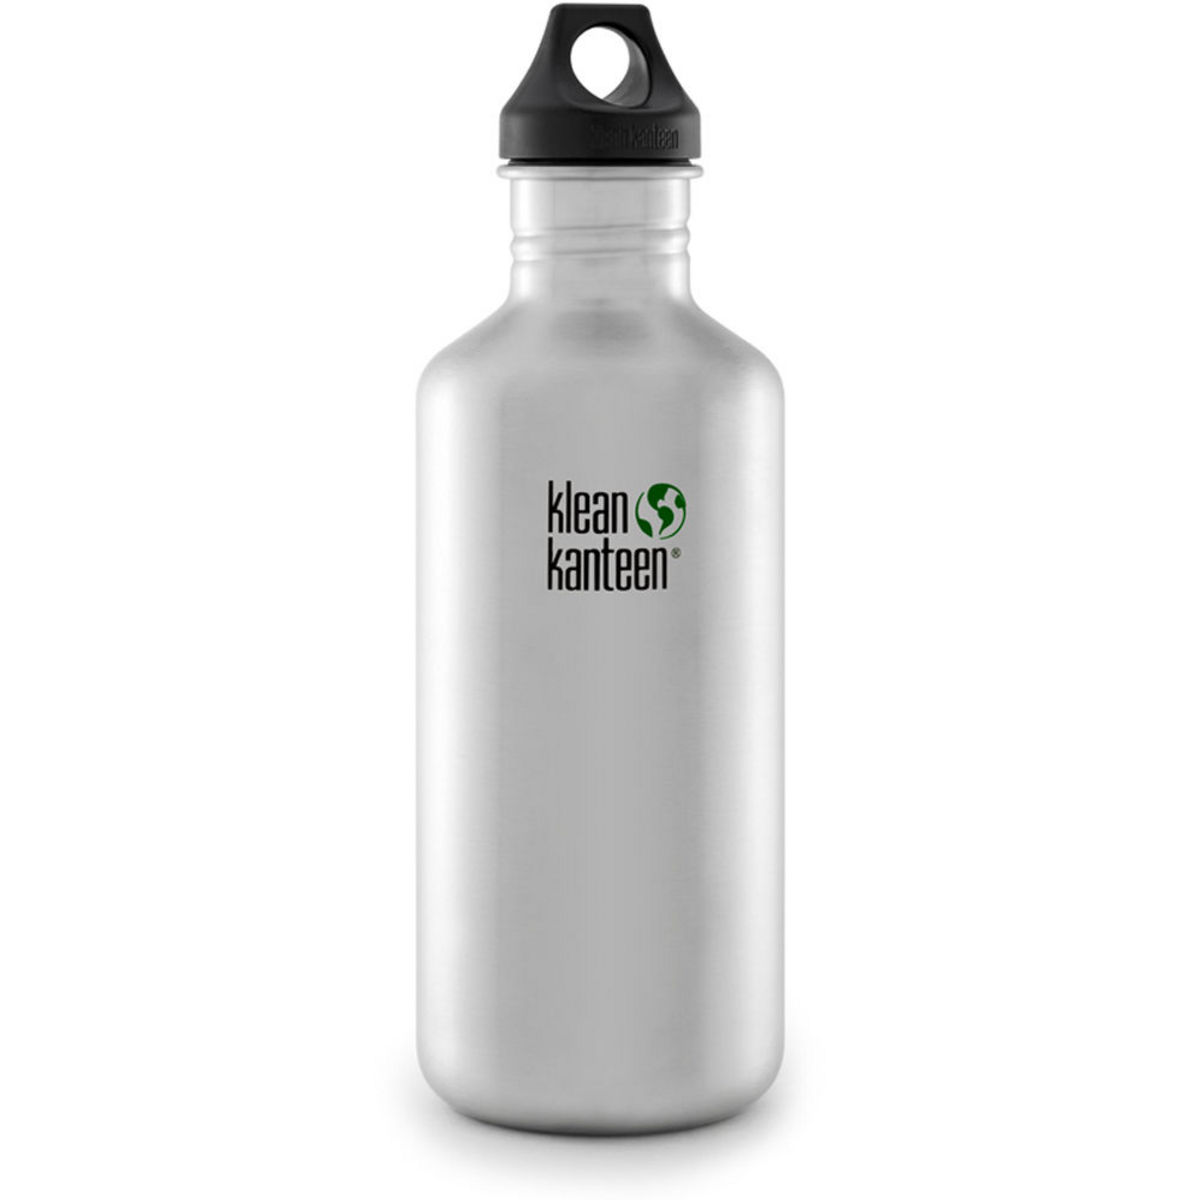 Klean Kanteen Classic 64oz Waterbottle with Loop Cap